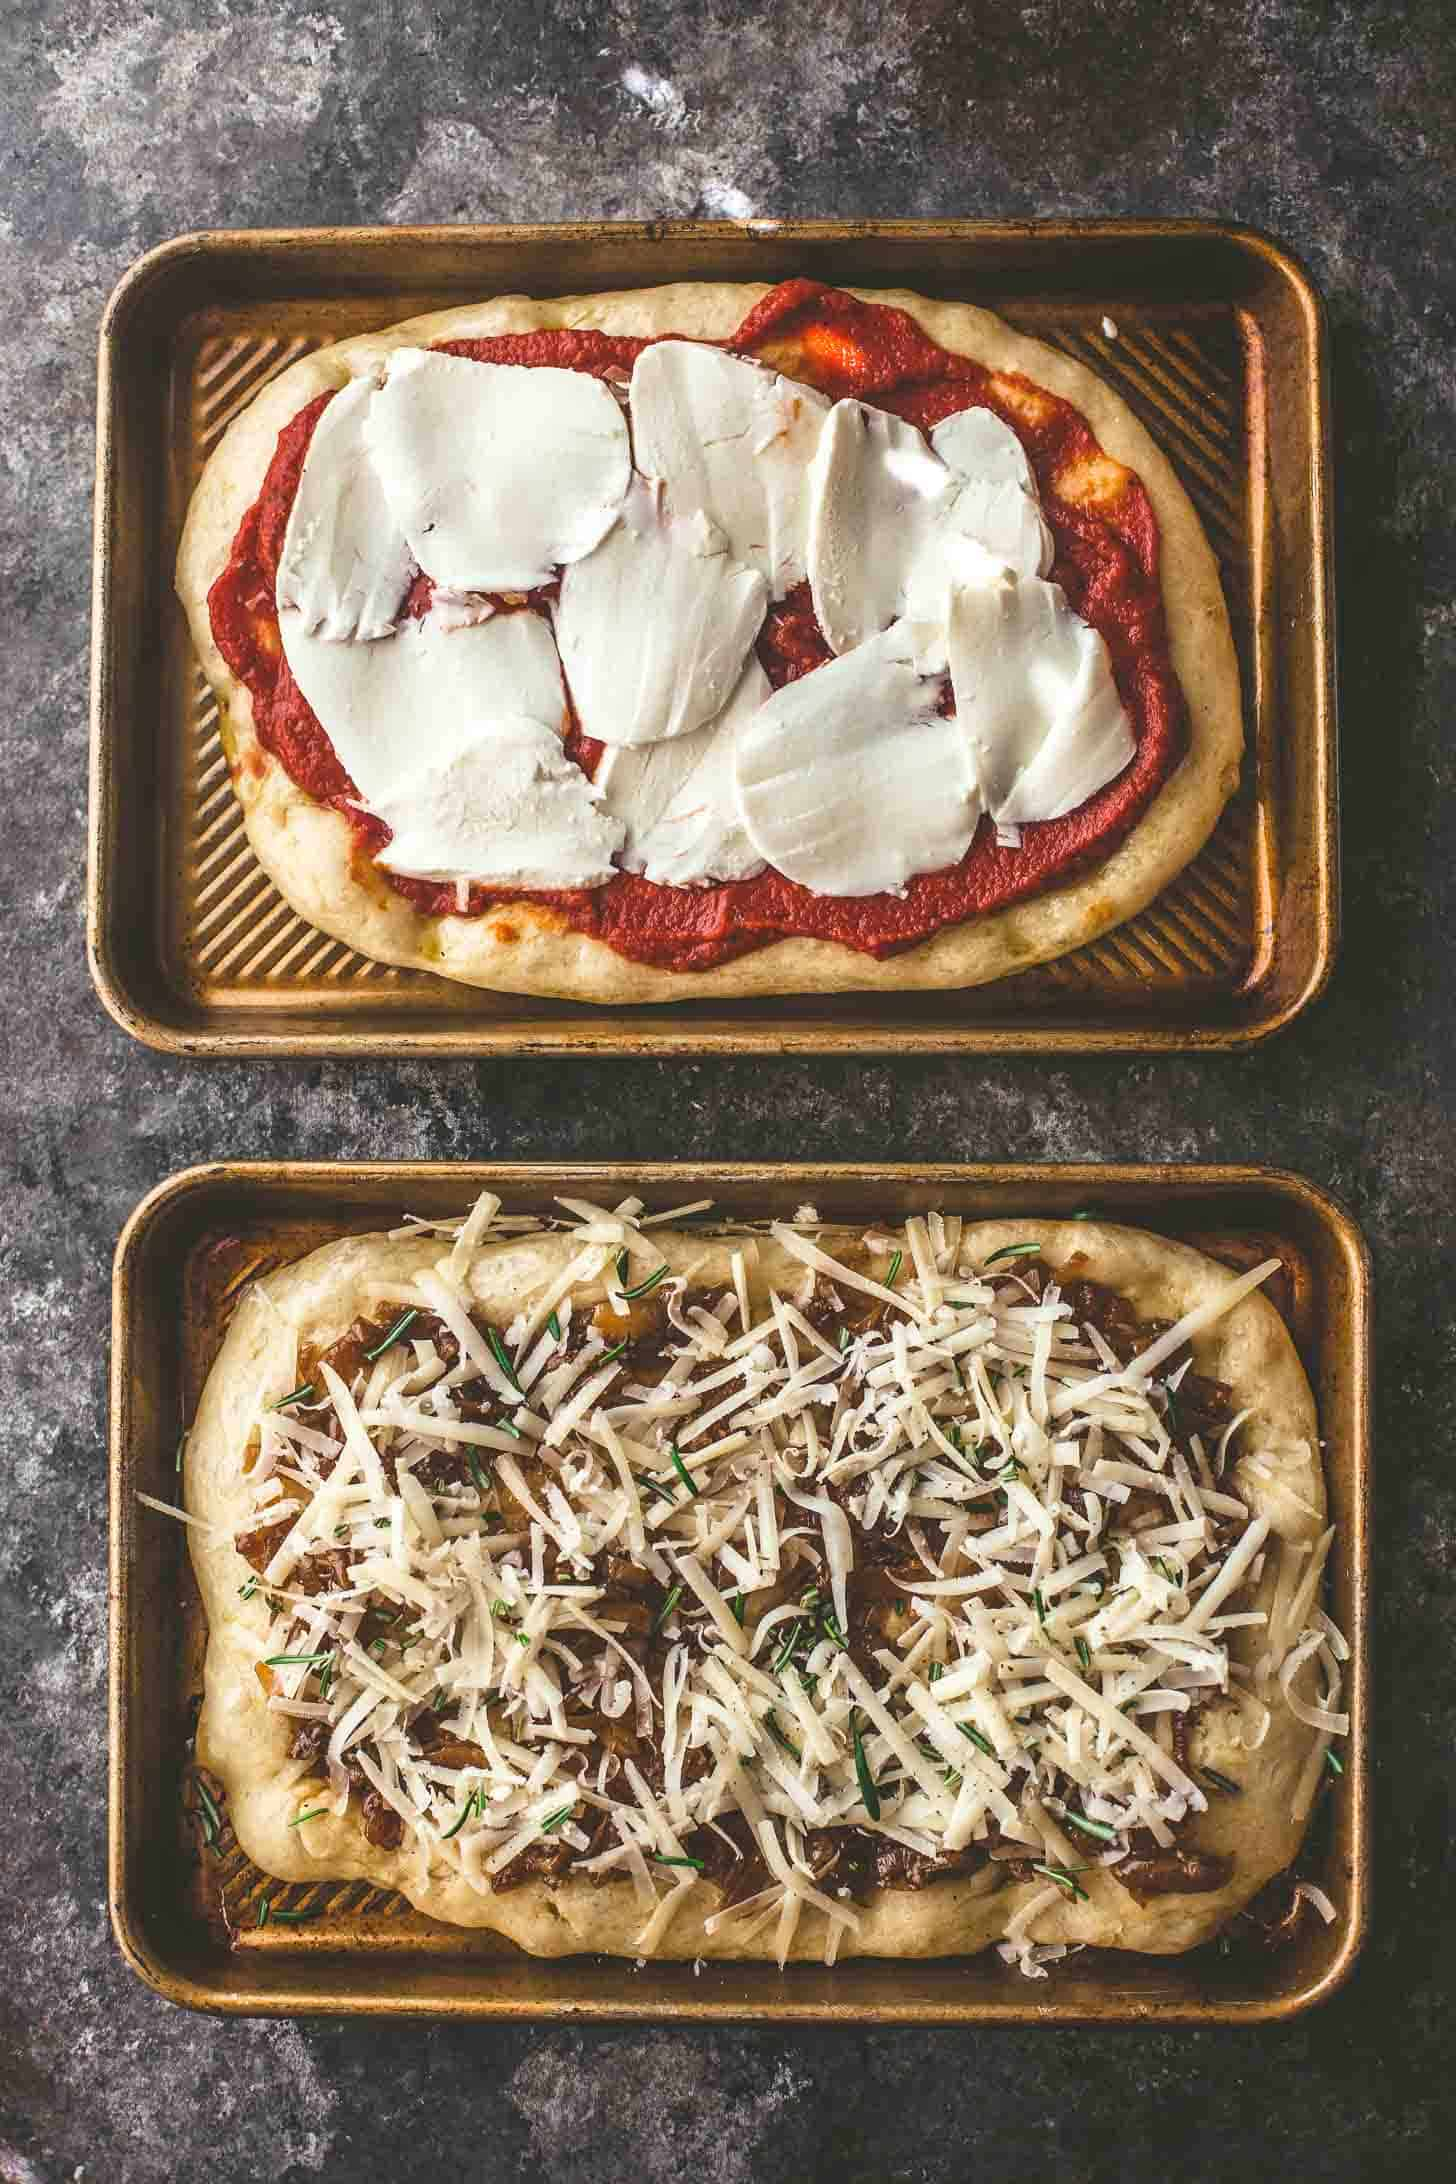 2 no knead pizzas before baking on sheet pans